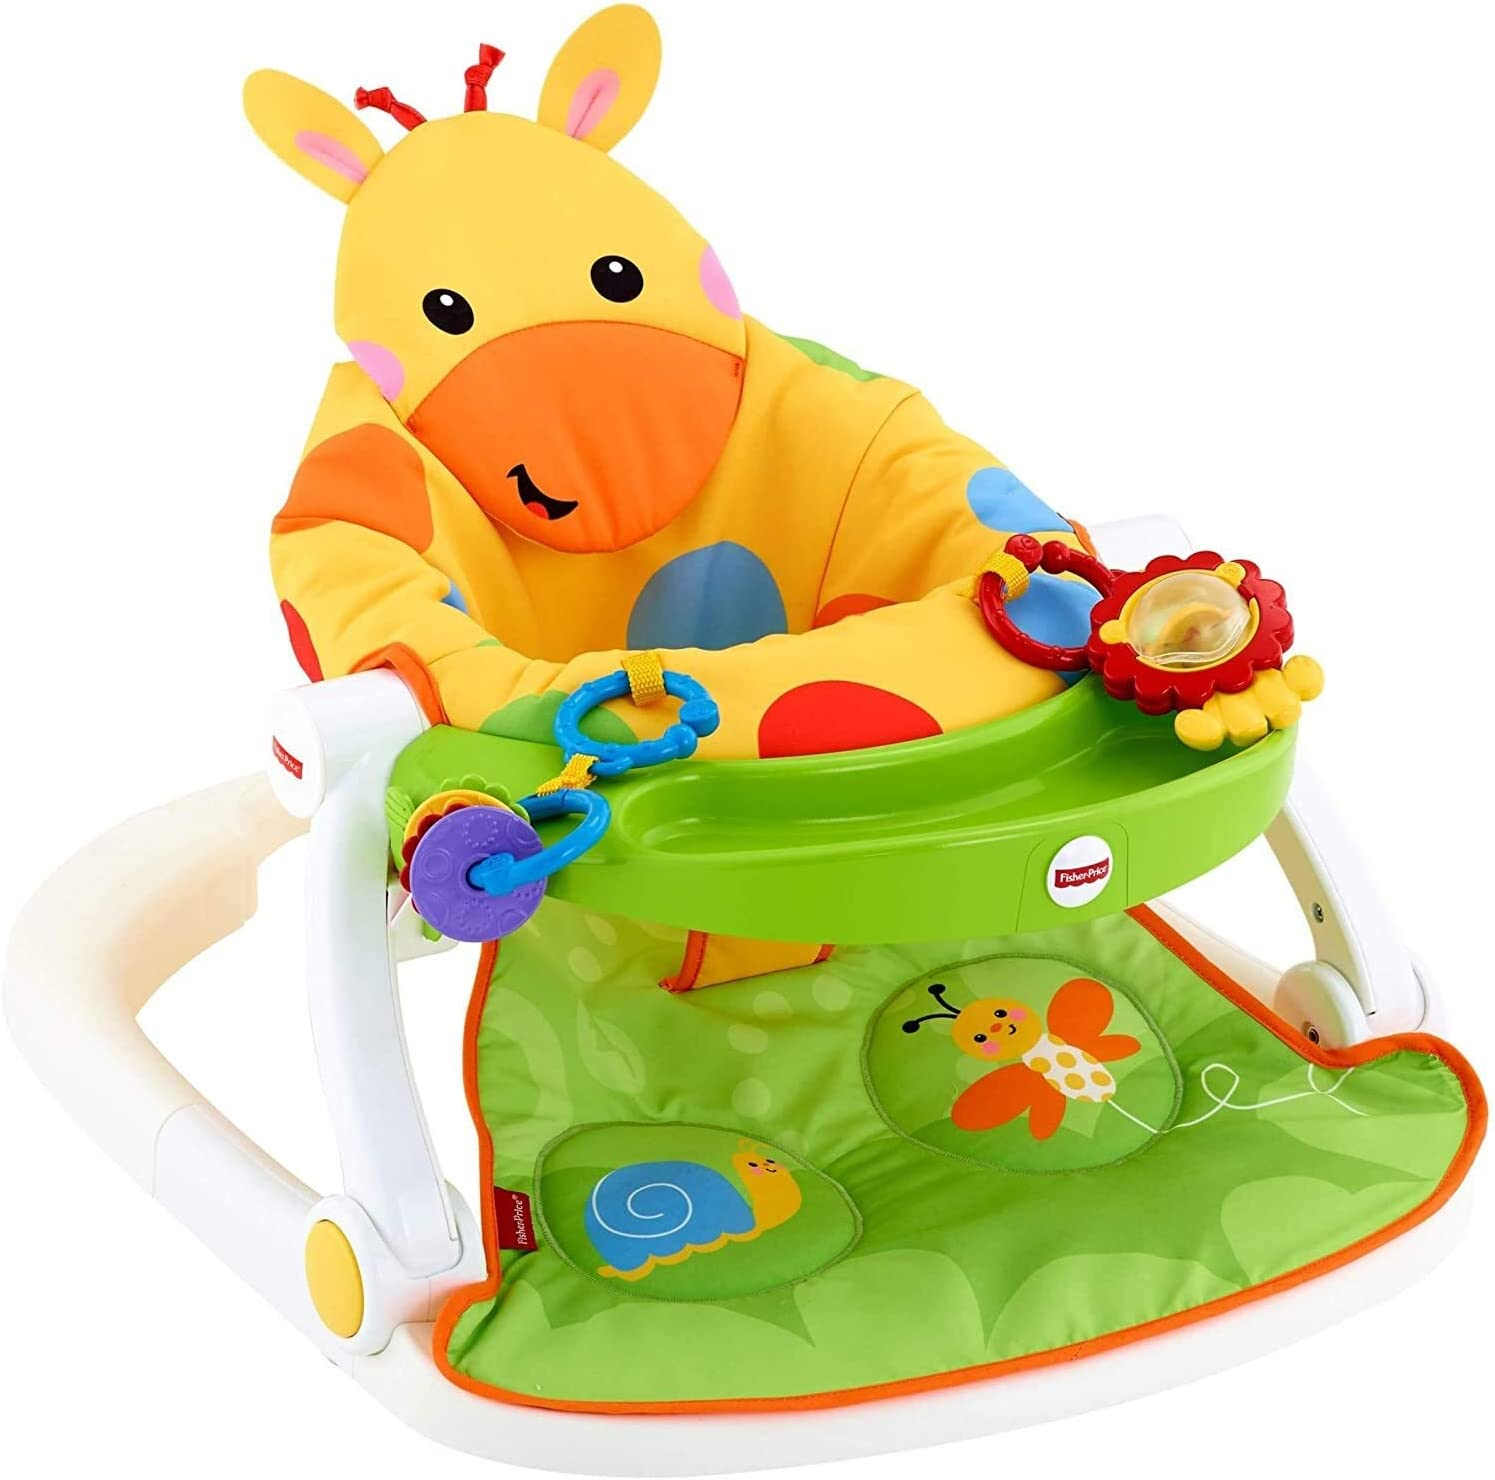 Fisher-Price Sit-Me-Up Floor Seat with Tray, Giraffe by Fisher-Price: Amazon.es: Bebé